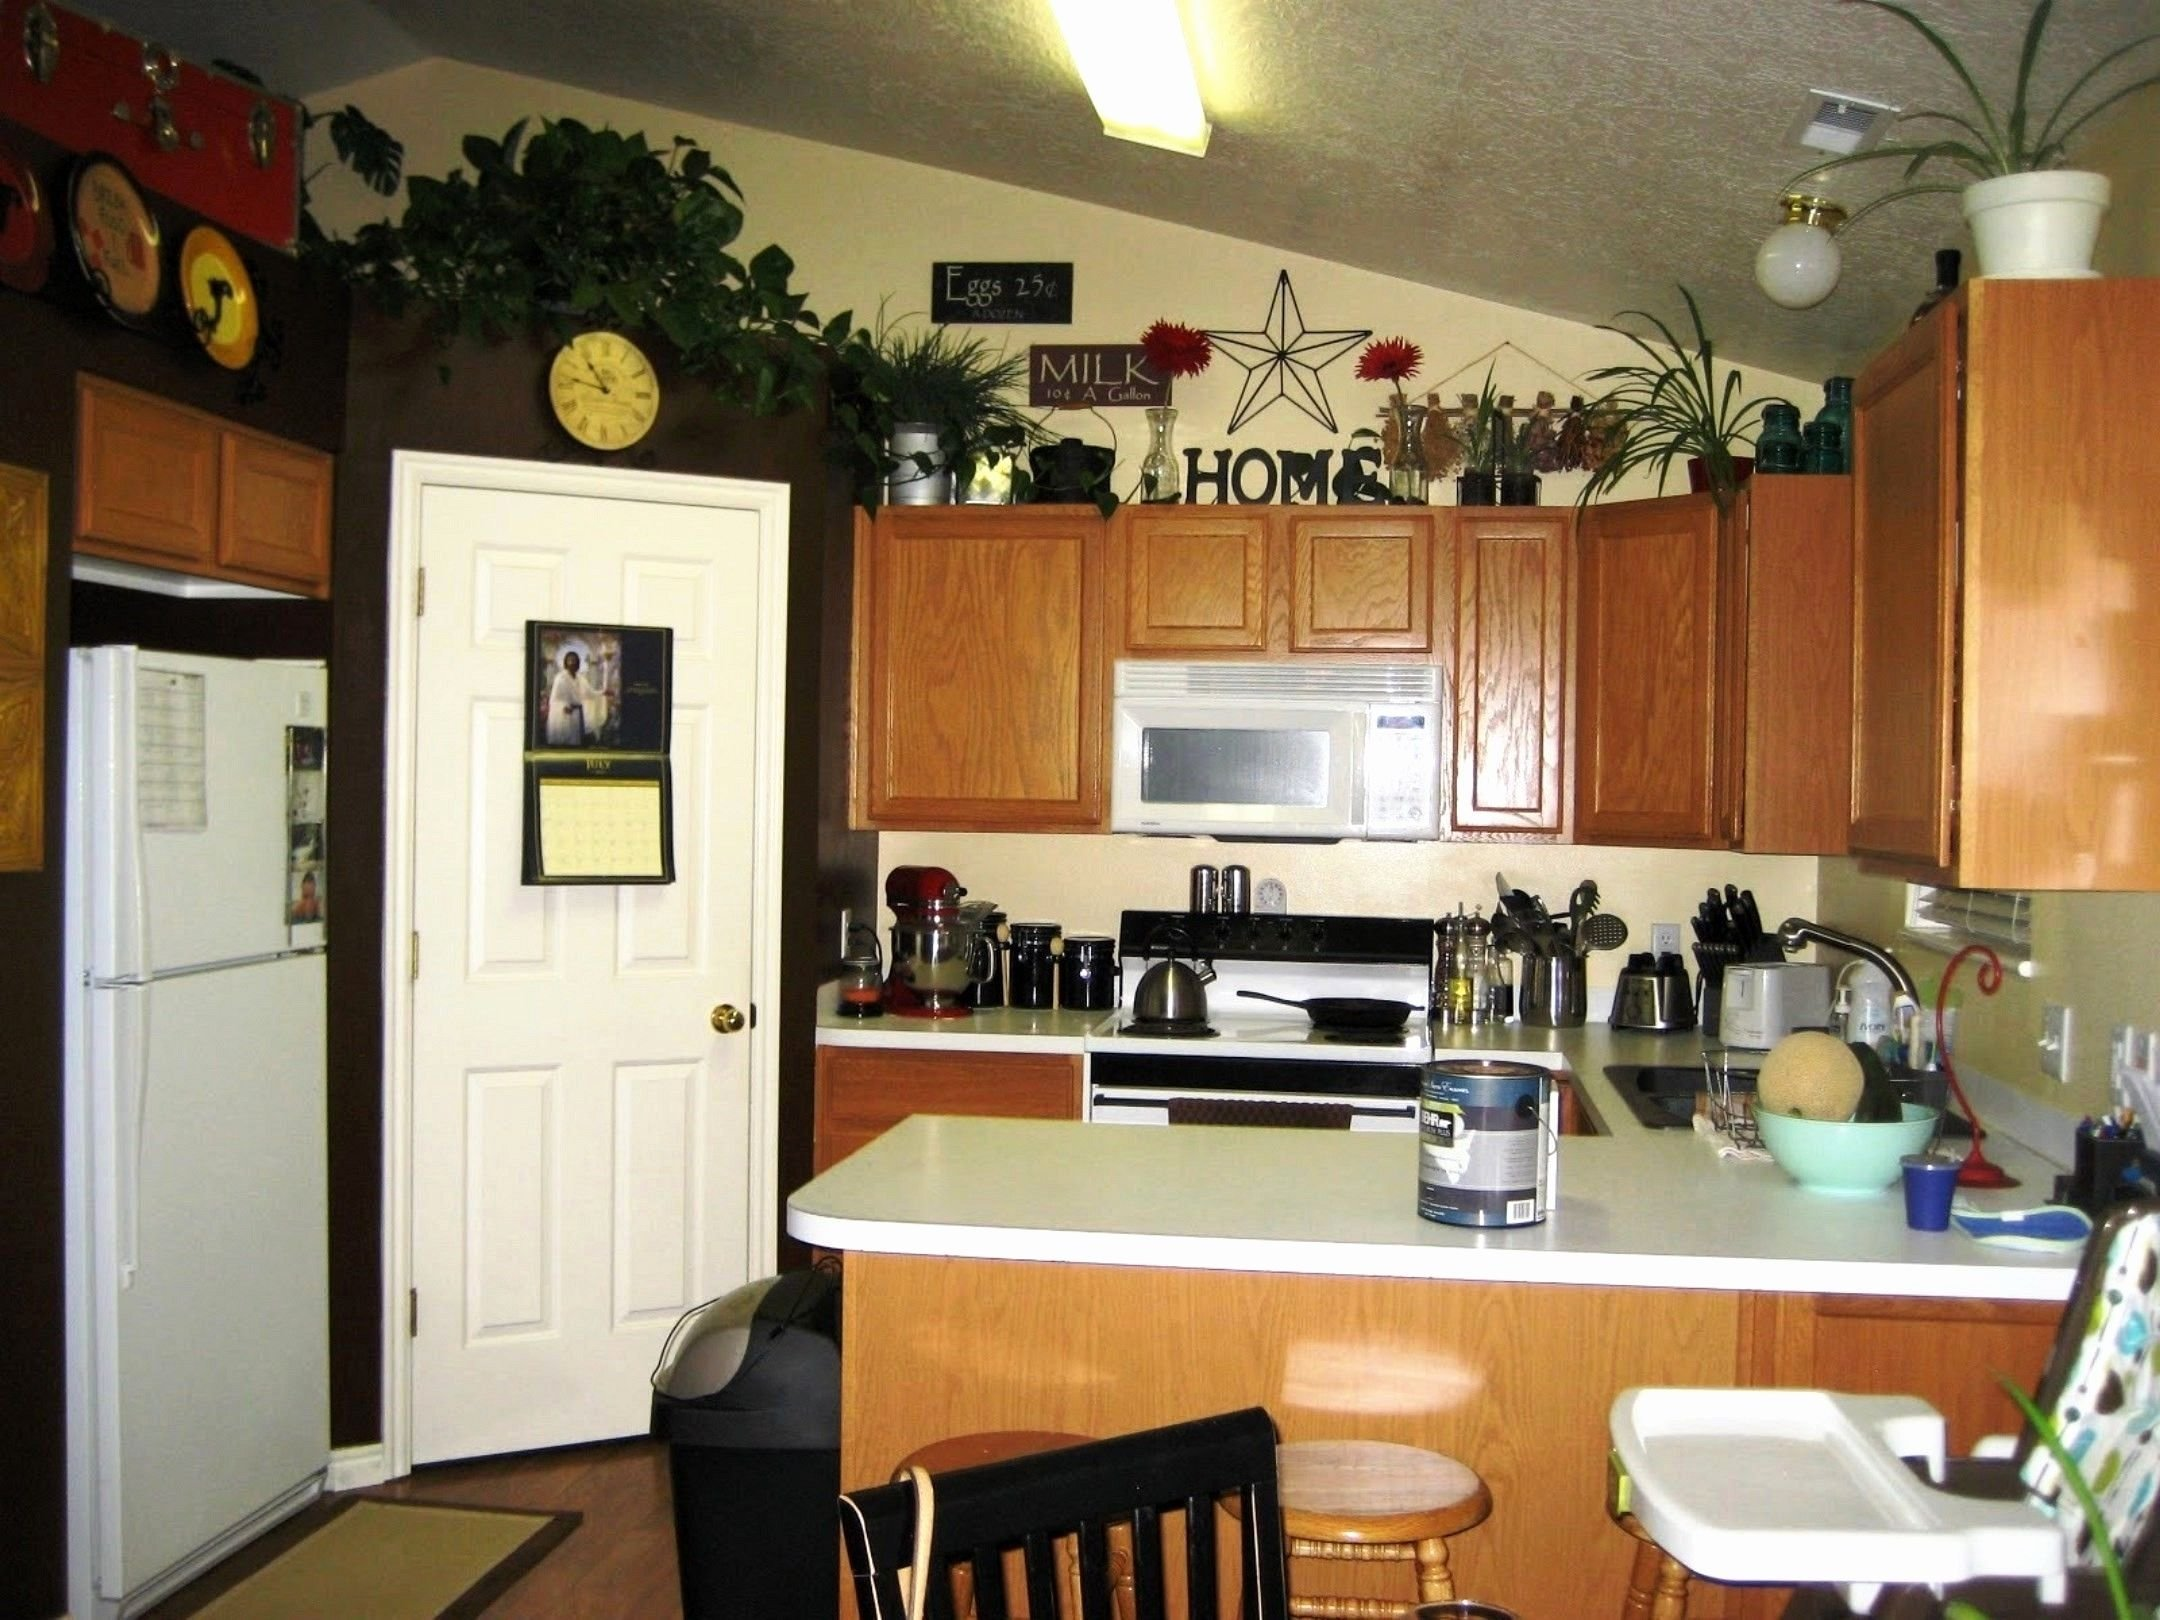 10 Fabulous Ideas For Above Kitchen Cabinets marvelous kitchen decorating ideas above cabinets of popular and 2020